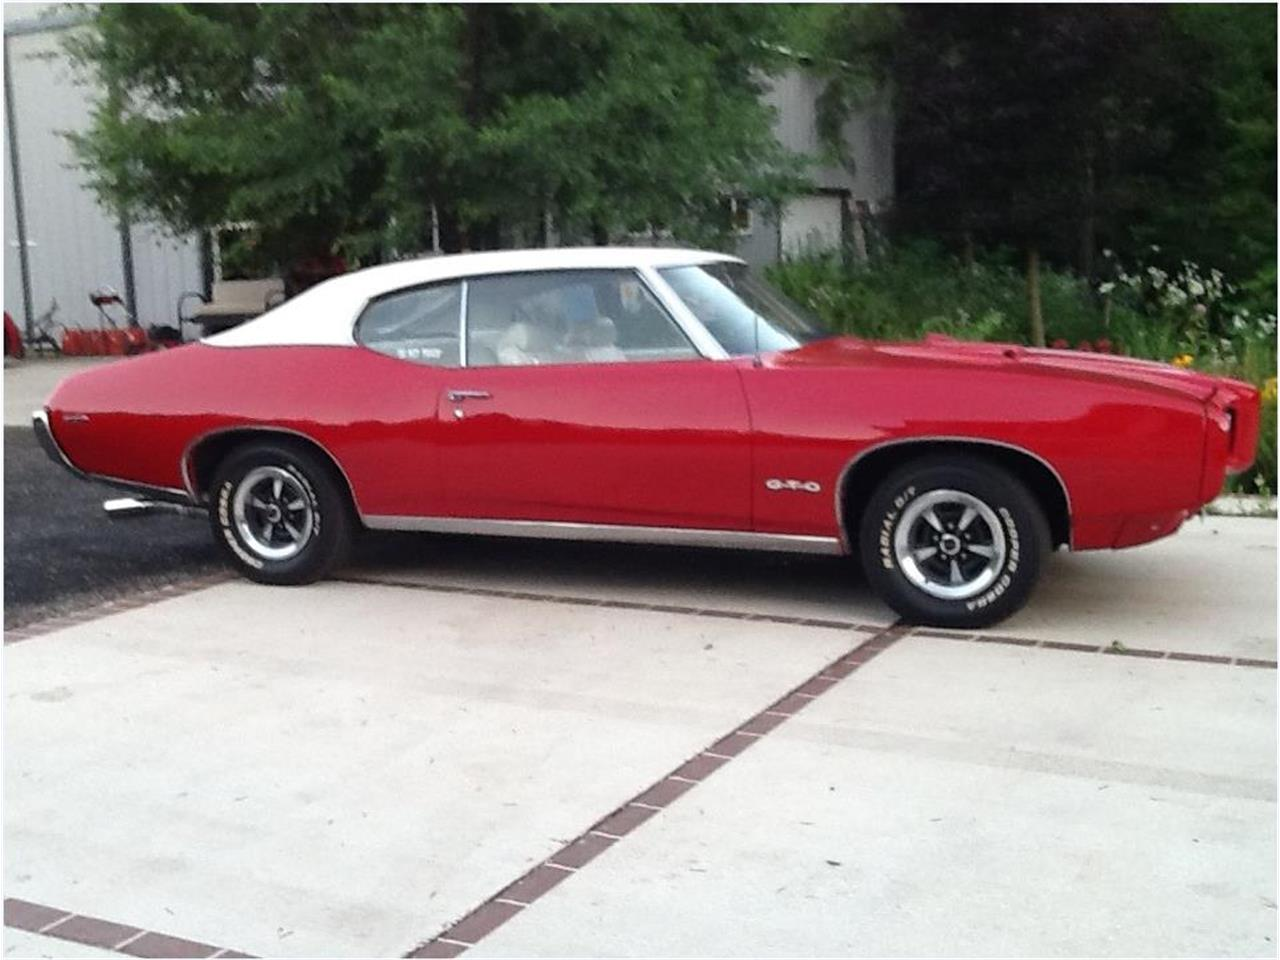 For Sale: 1969 Pontiac GTO in Plymouth, Wisconsin